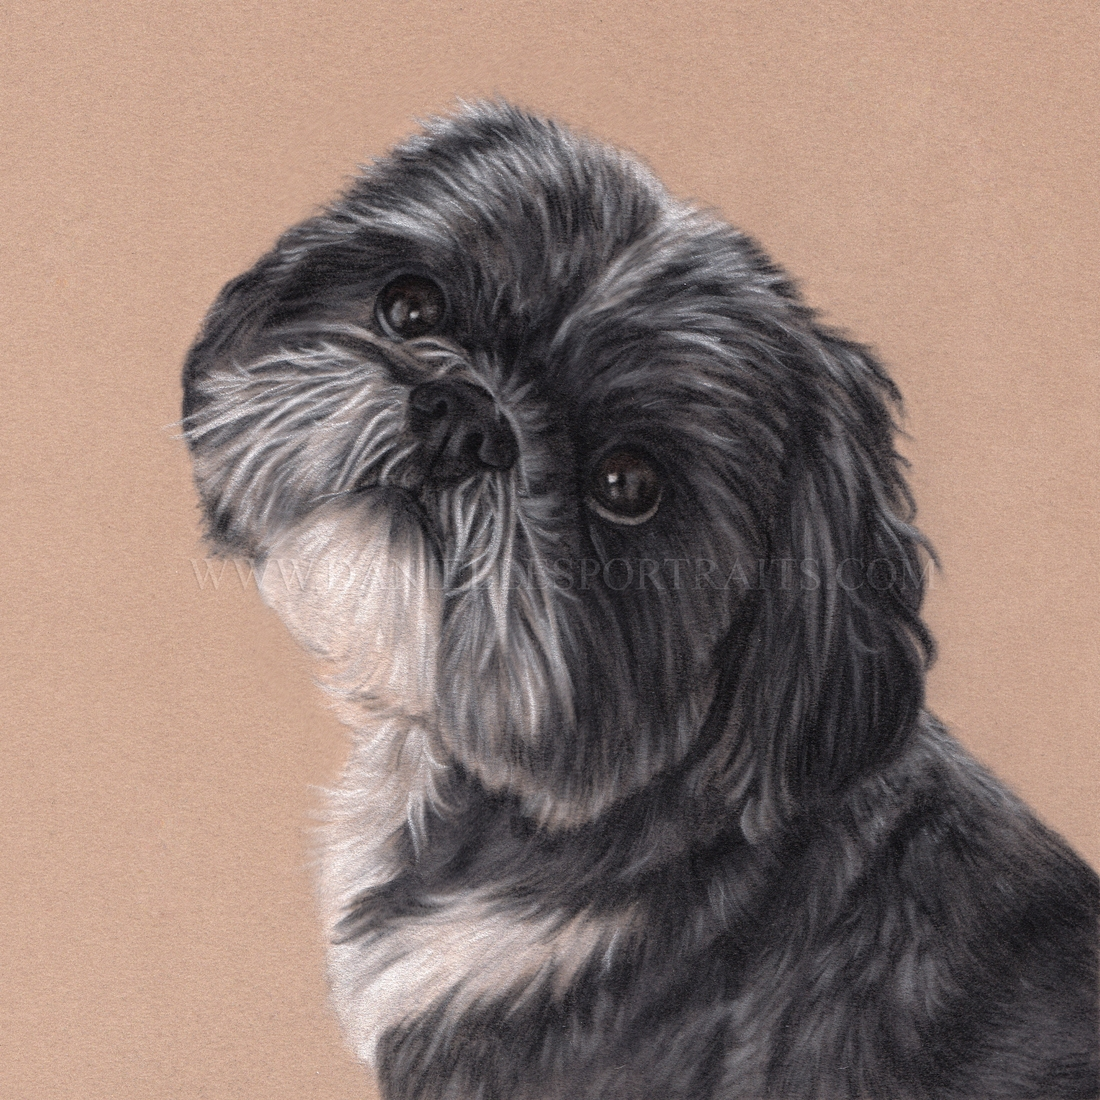 07-Bailey-Danielle-Fisher-Realistic-Pet-and-Wildlife-Portraits-www-designstack-co